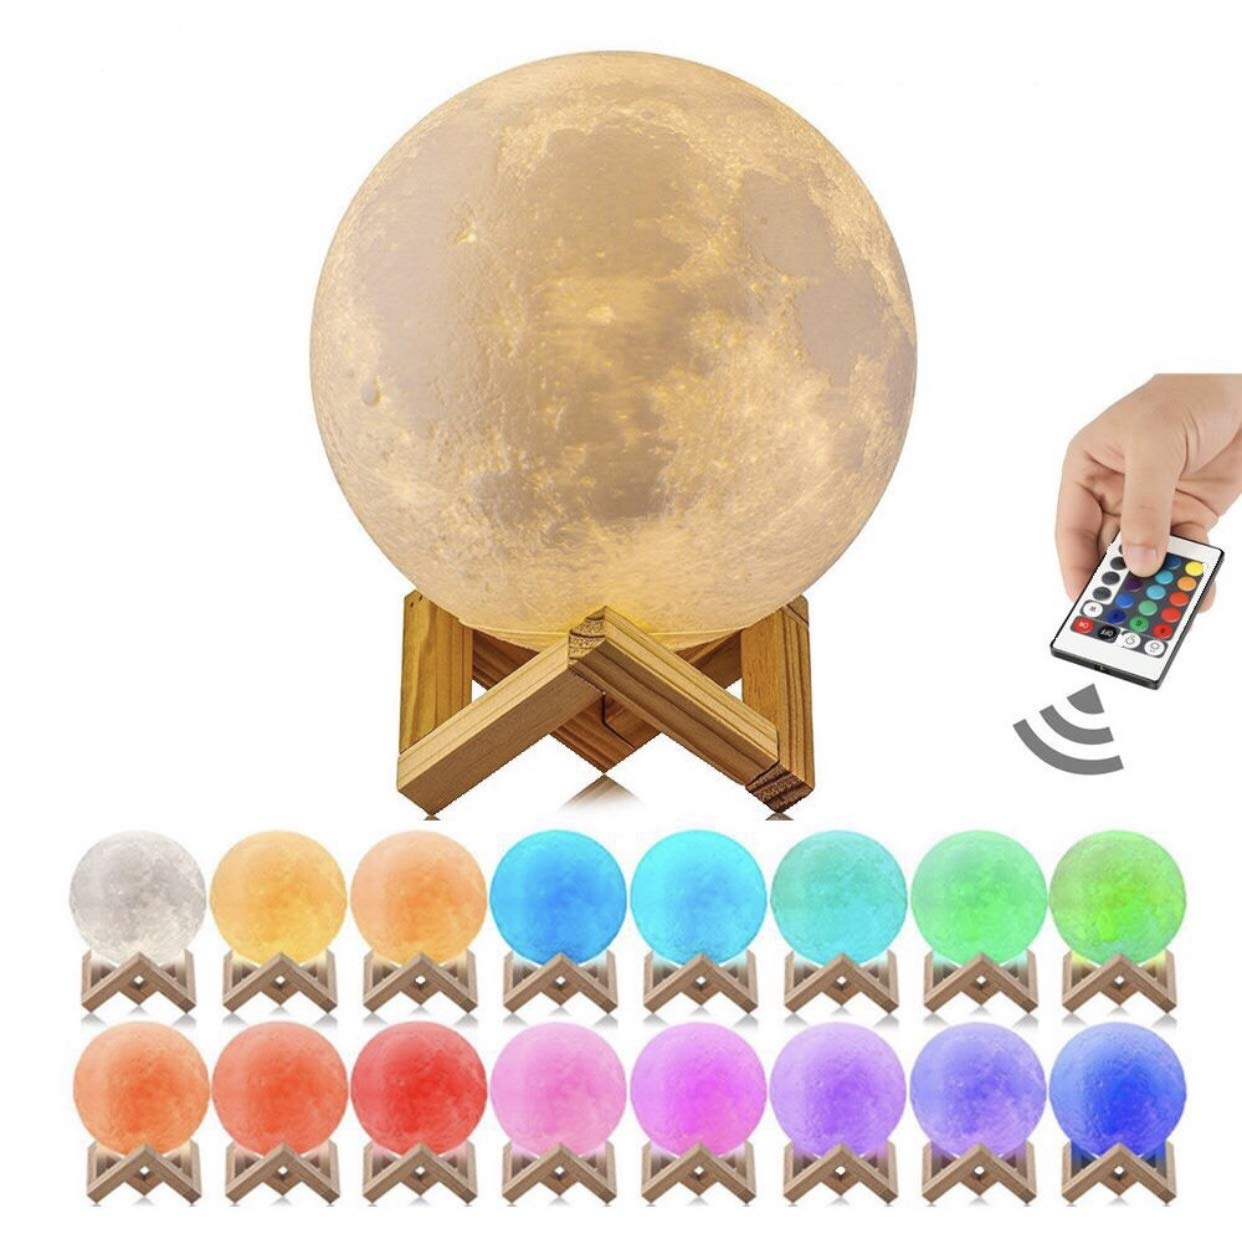 Astro-Night Moon Lamp, 3D Printed 16 Color LED Moon Night Light, USB Recharge, Remote Control & Touch Sensor, Adjustable Brightness(5.9 INCH) for Babies/Children Best Gift for Friends & Admirers